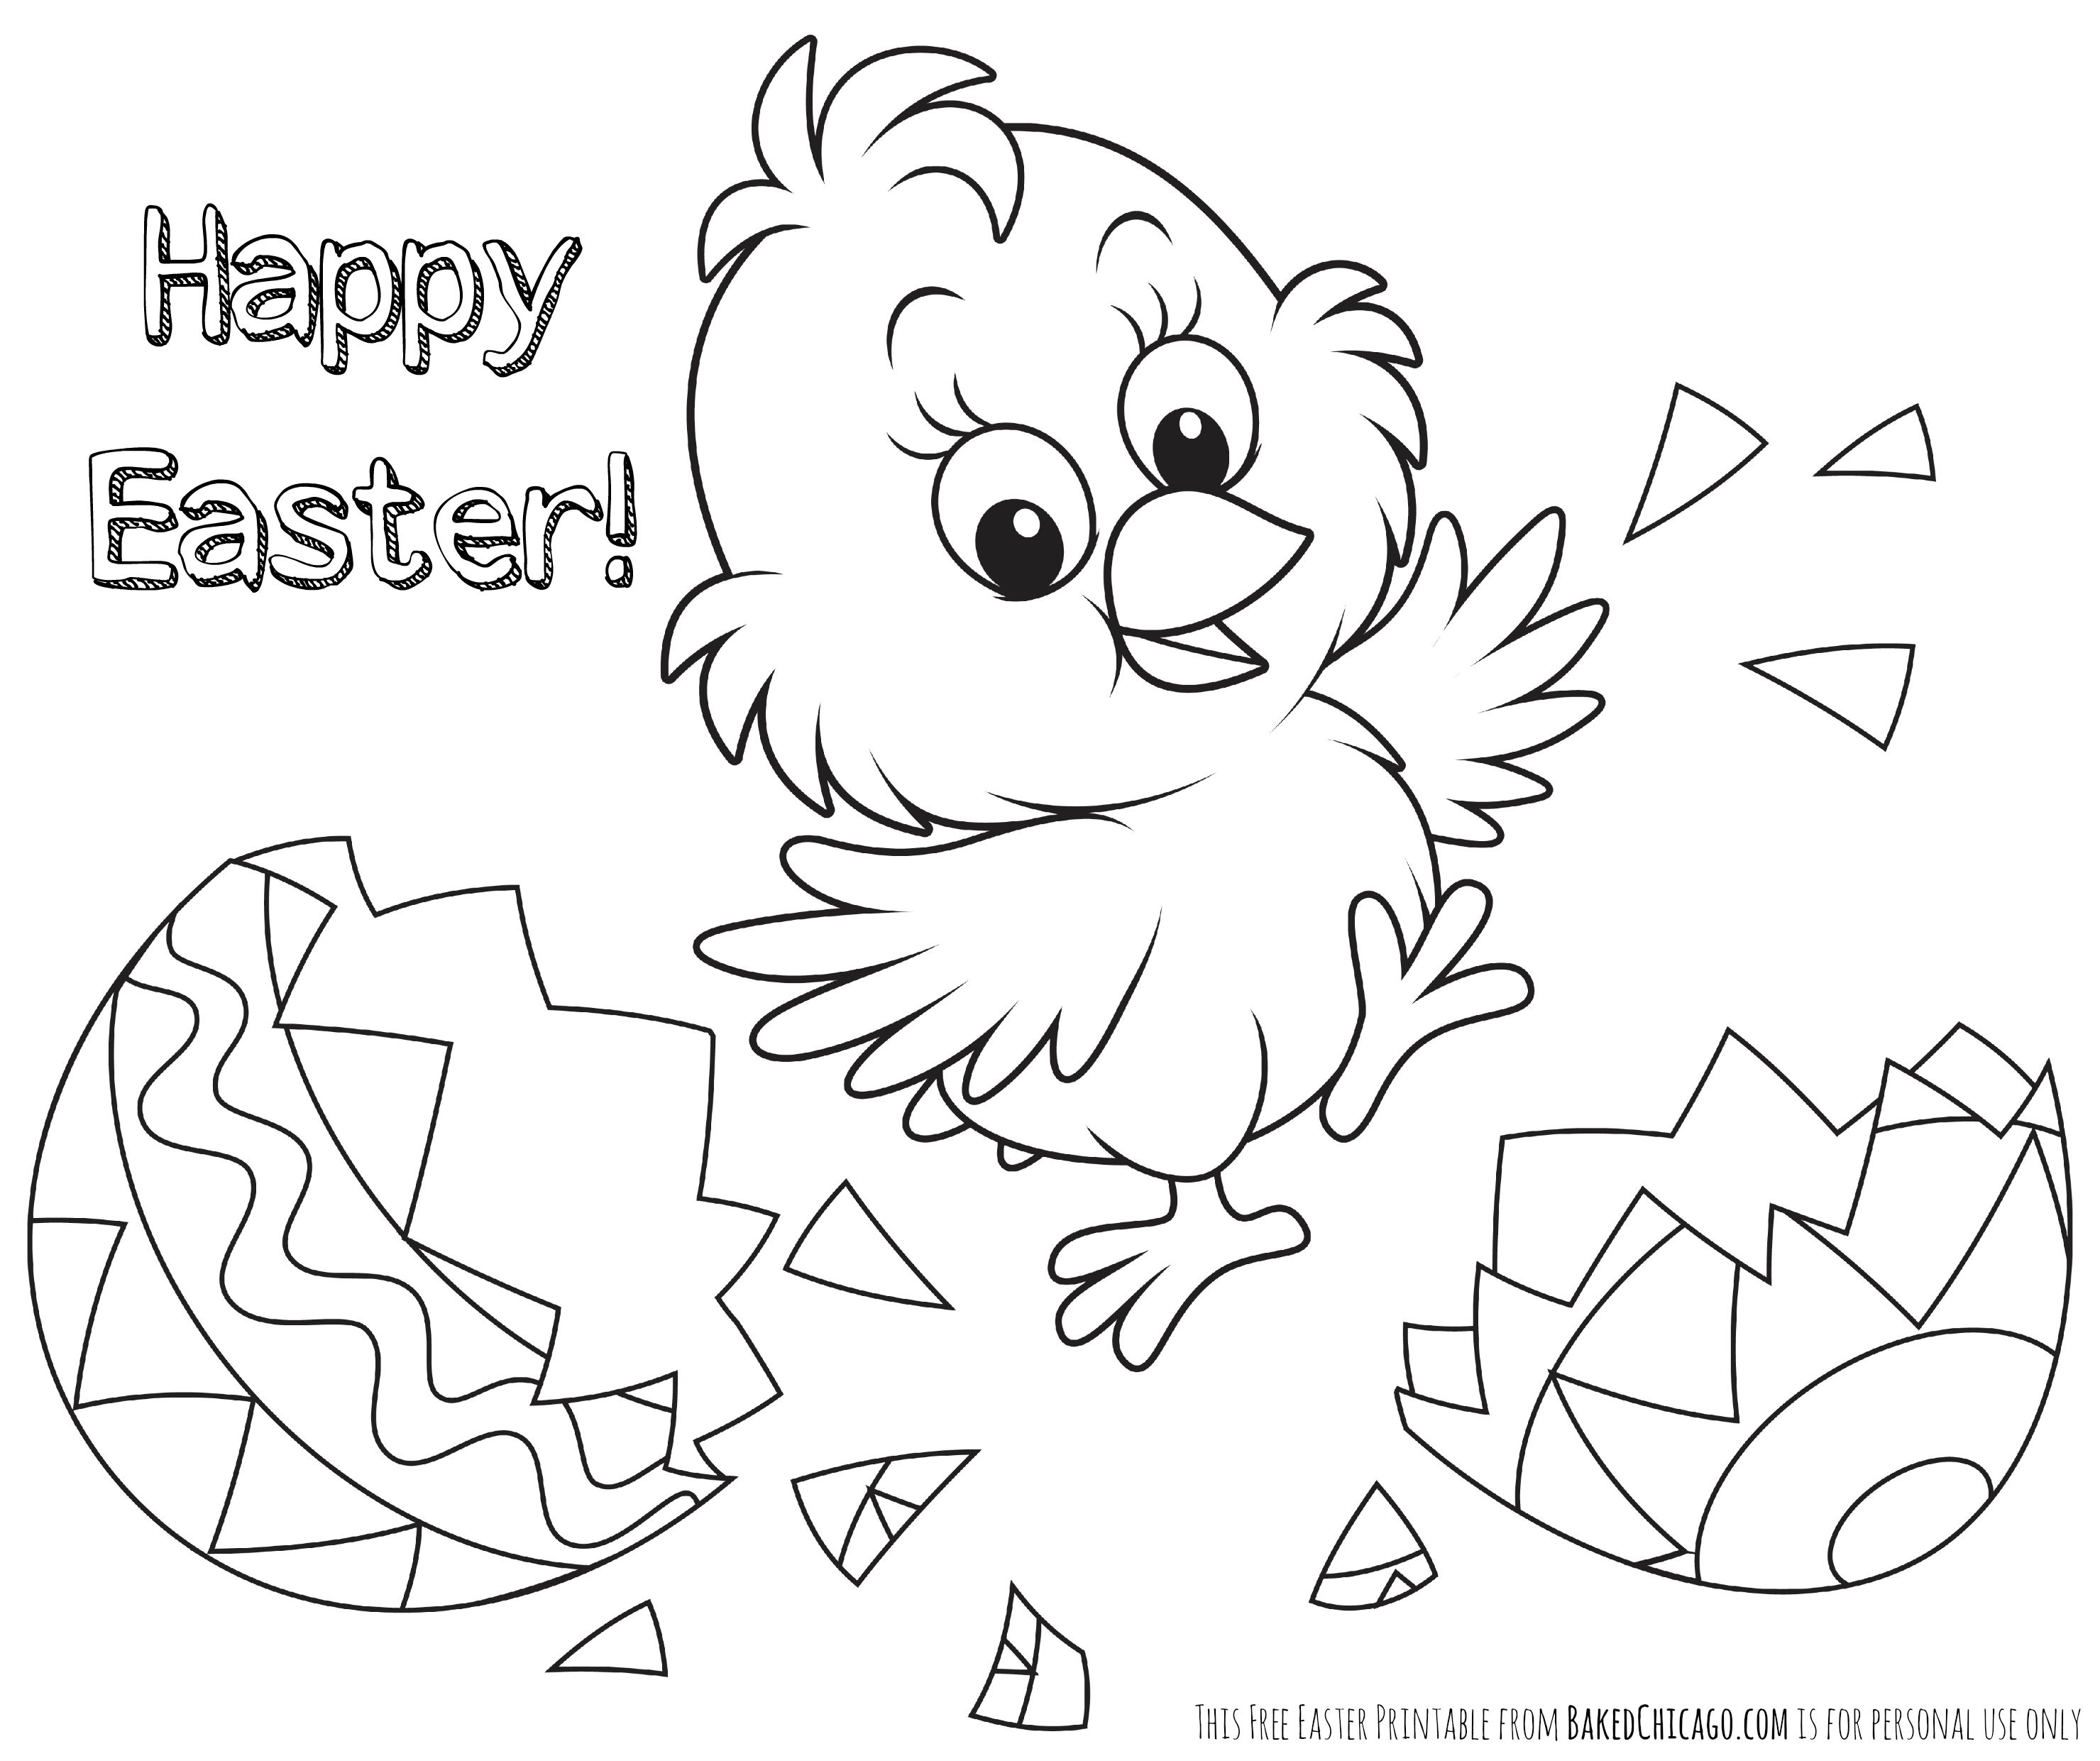 Easter Coloring Pages Printable Bloodbrothers Me Colouring